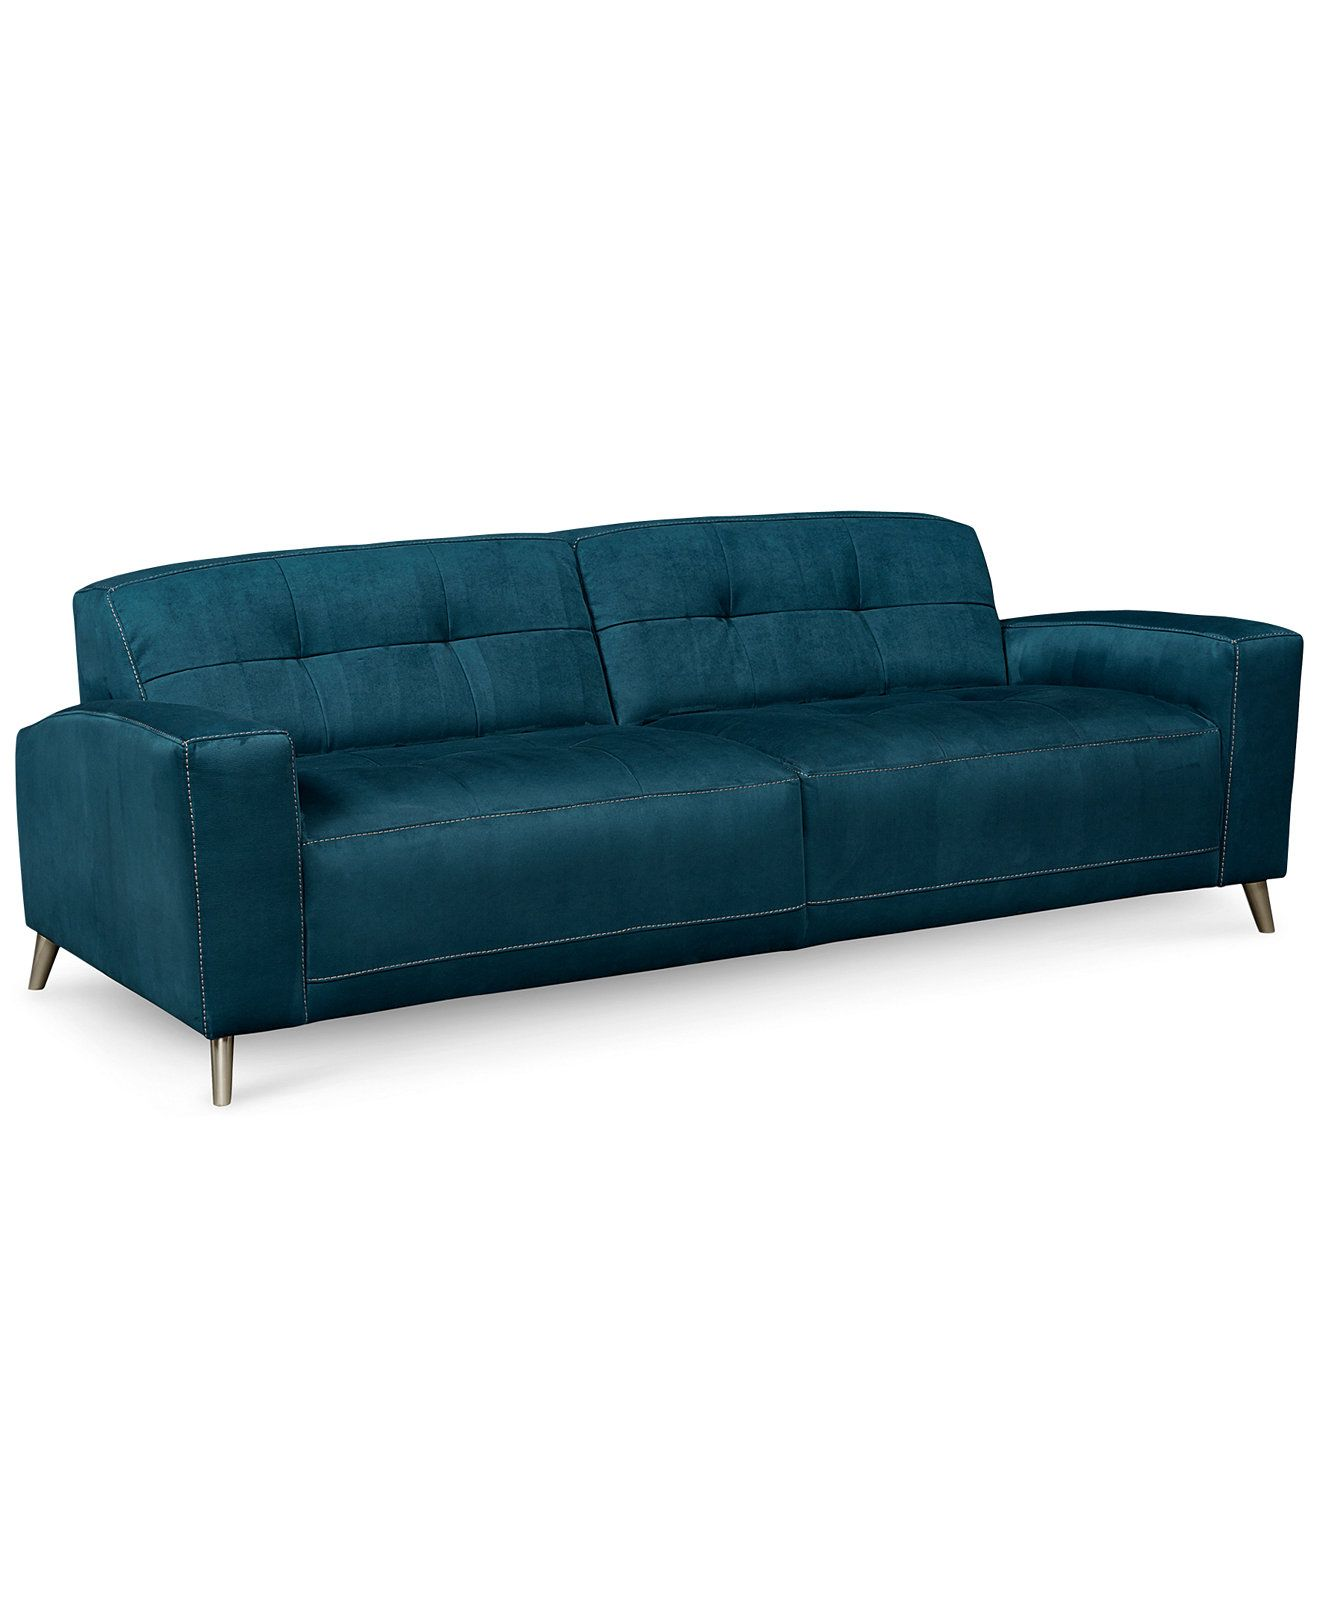 Raniel Fabric Sofa Couches Sofas Furniture Macy S